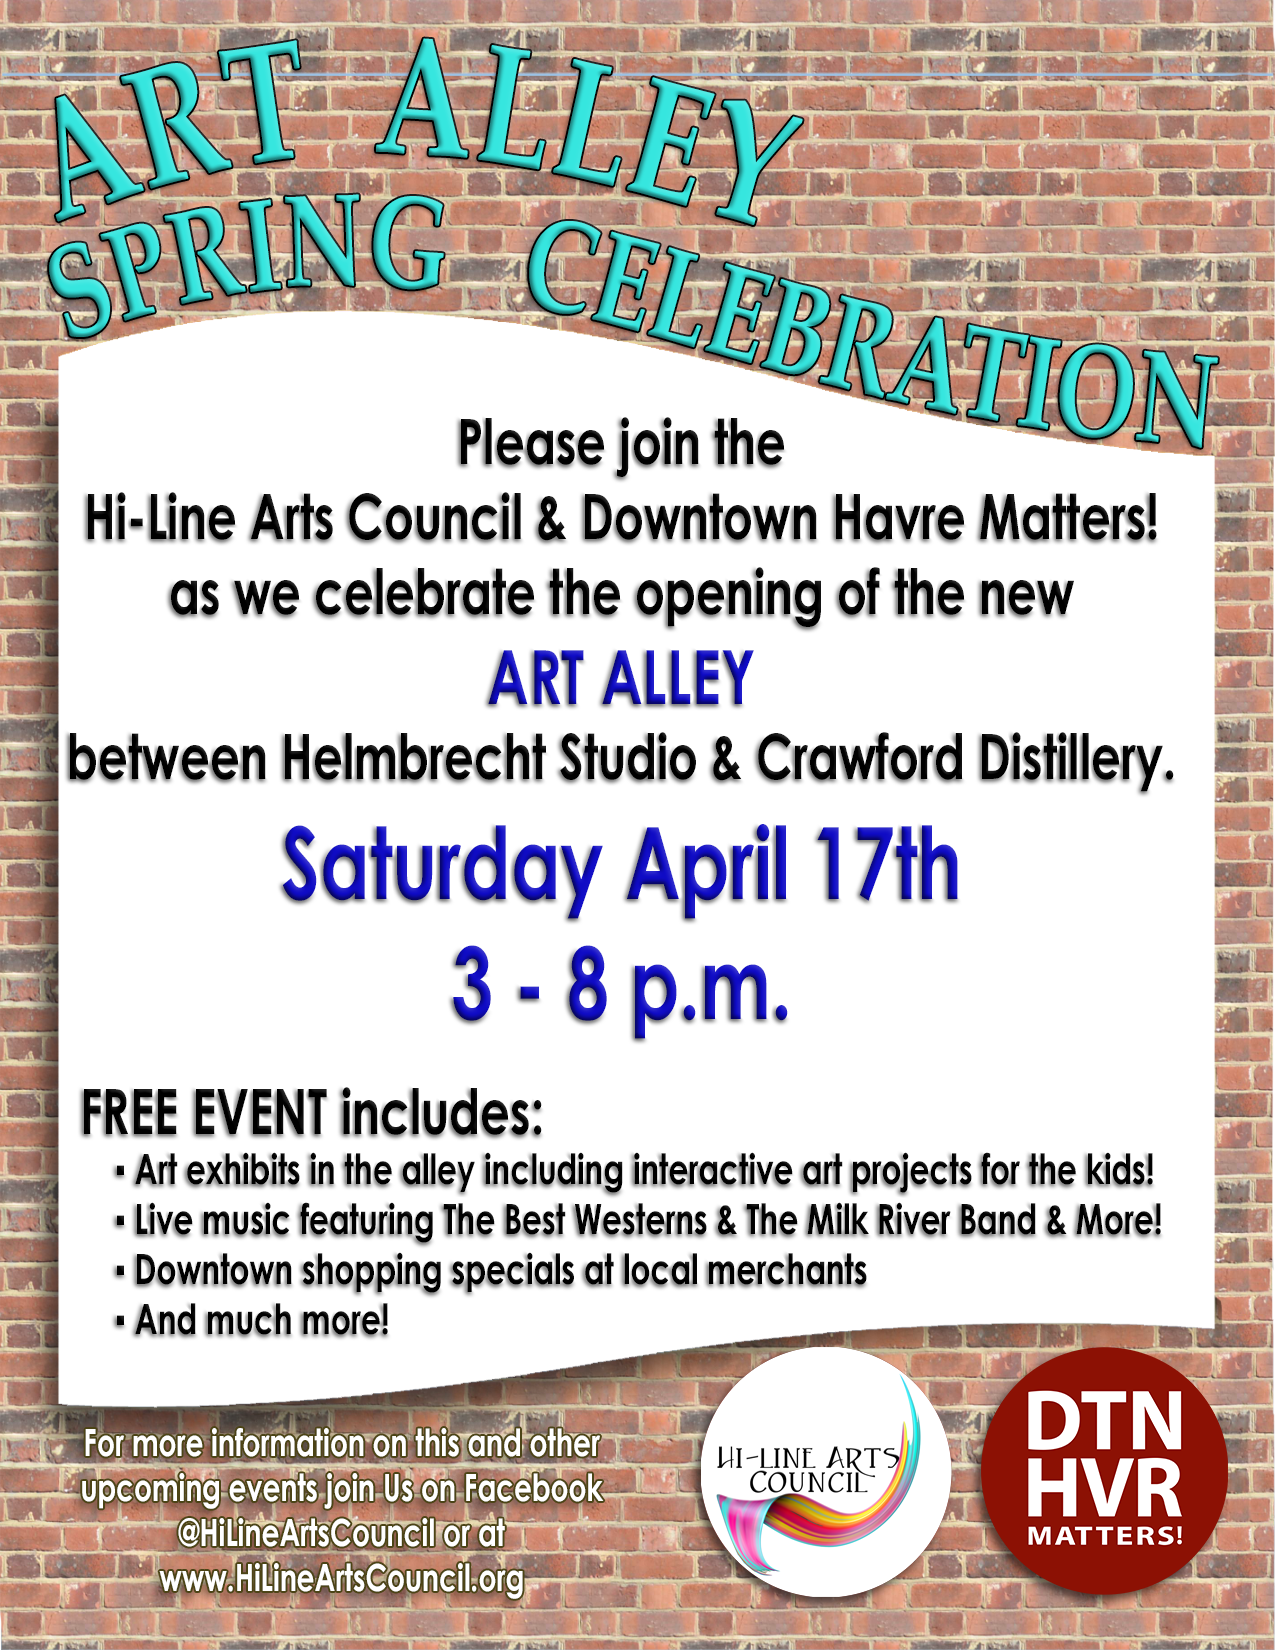 ART ALLEY Spring Celebration between Helmbrecht Studio & Crawford Distillery. Saturday April 17th 3 - 8 p.m.